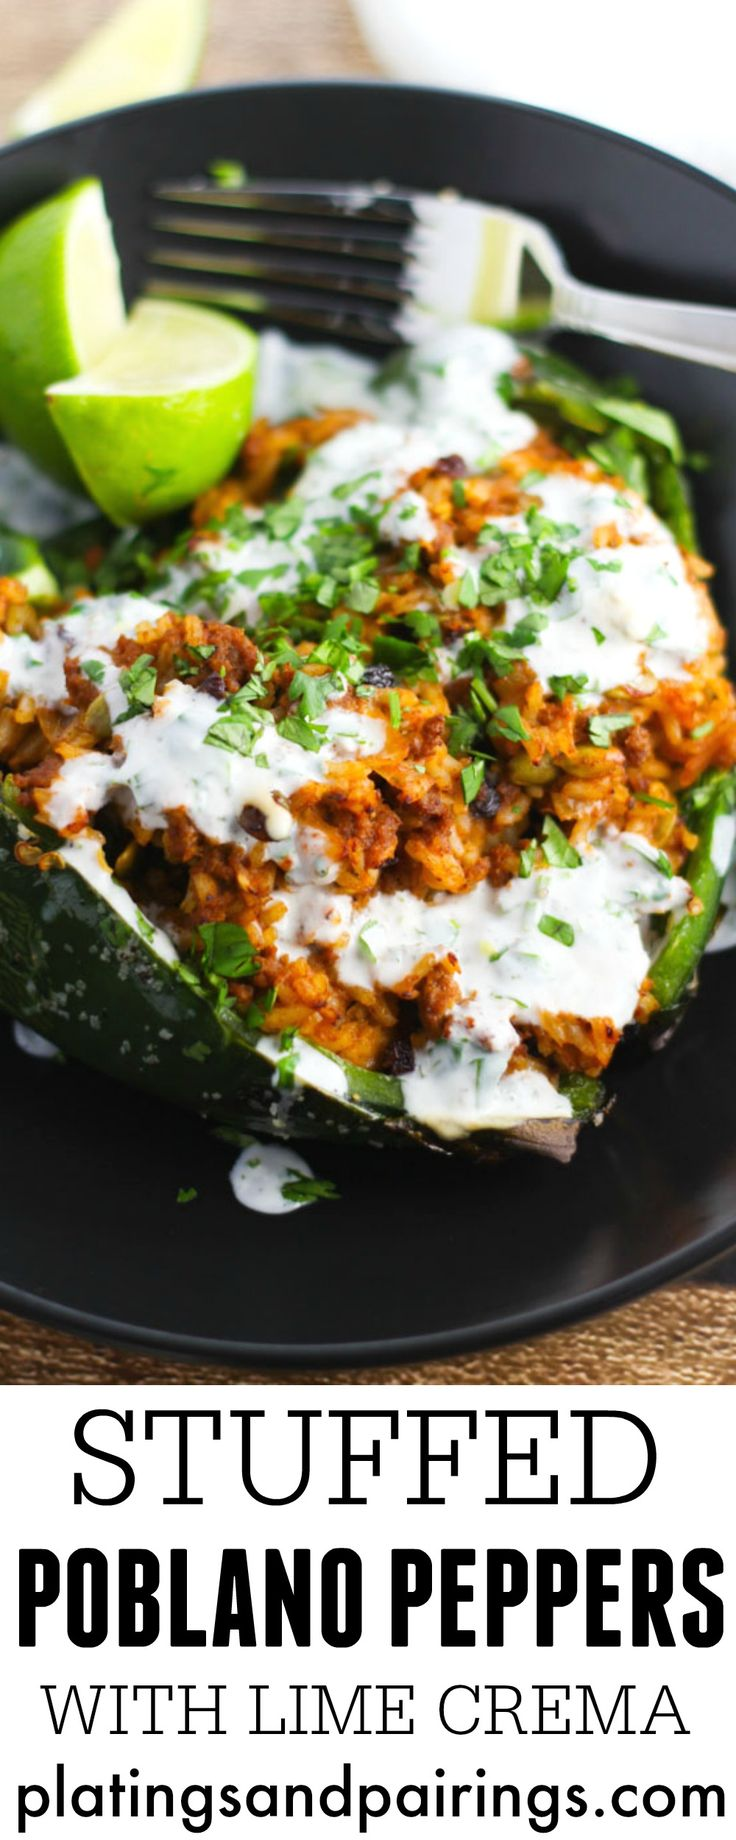 Stuffed Poblano Peppers with Lime Crema come together quickly and easily | platingsandpairings.com